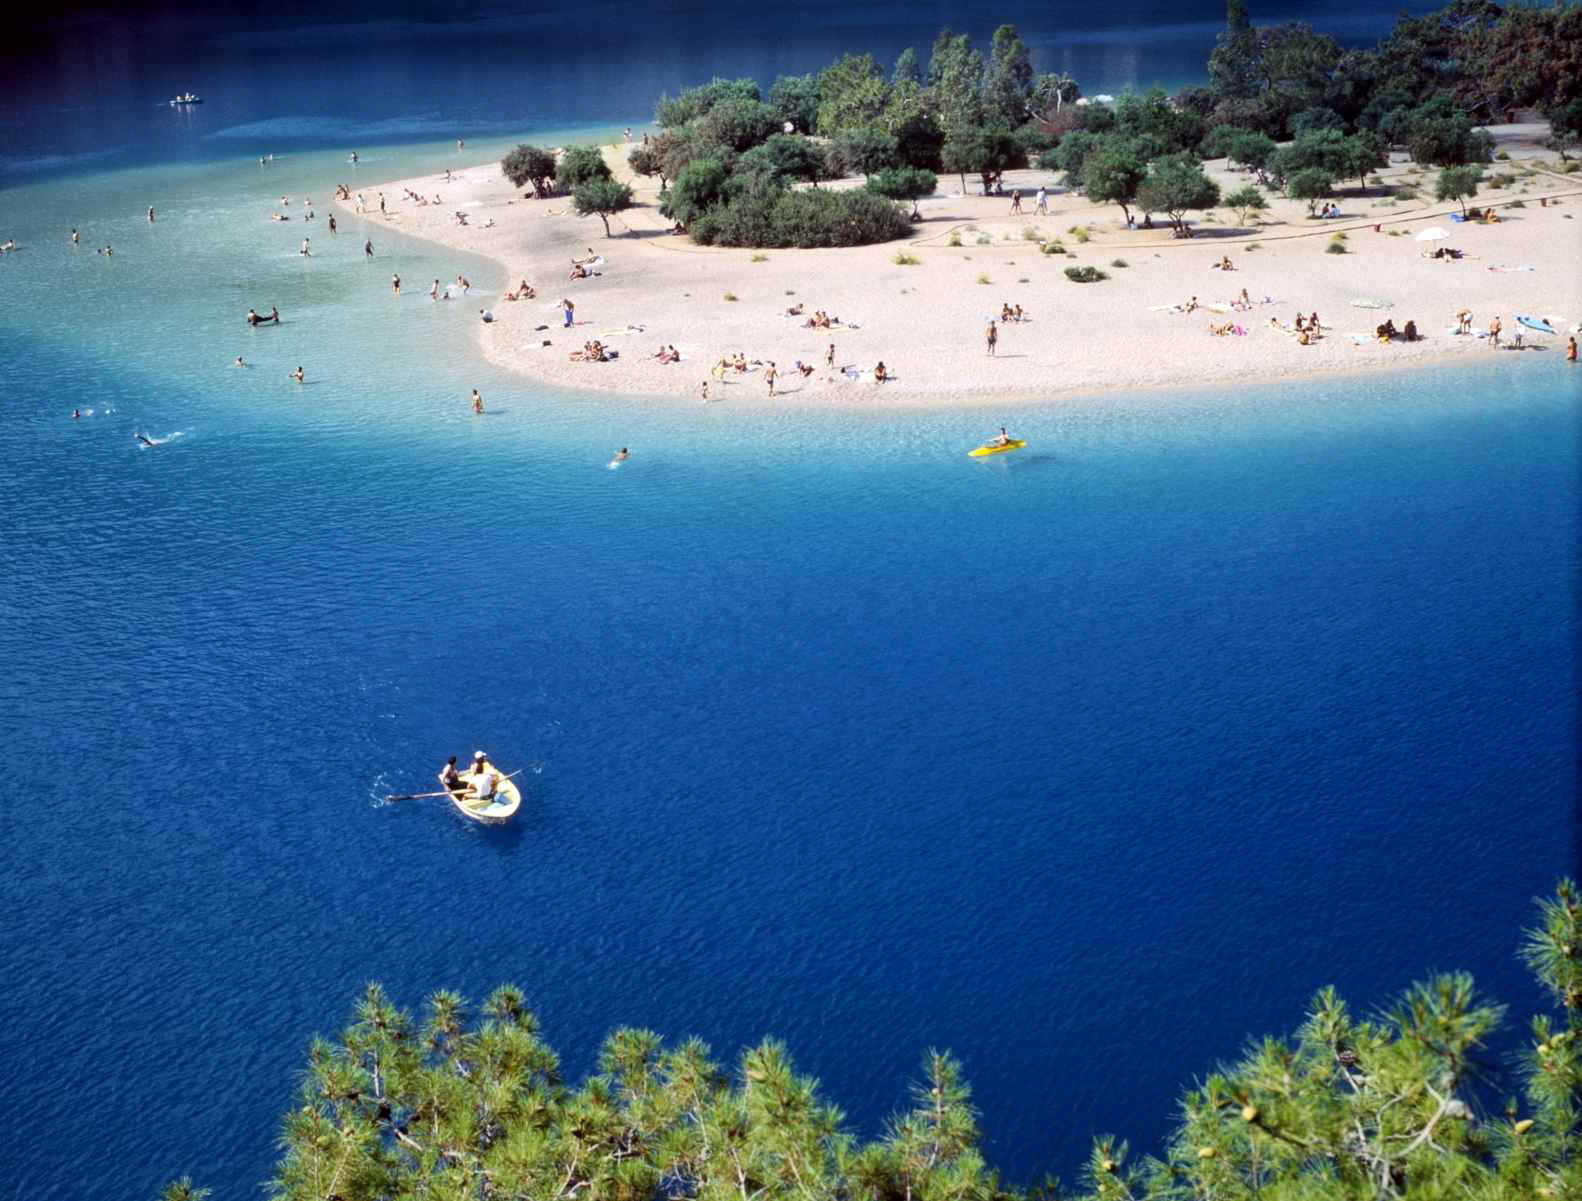 Oludeniz in Turkey - 2013 Summer: TURKEY Yacht Charter